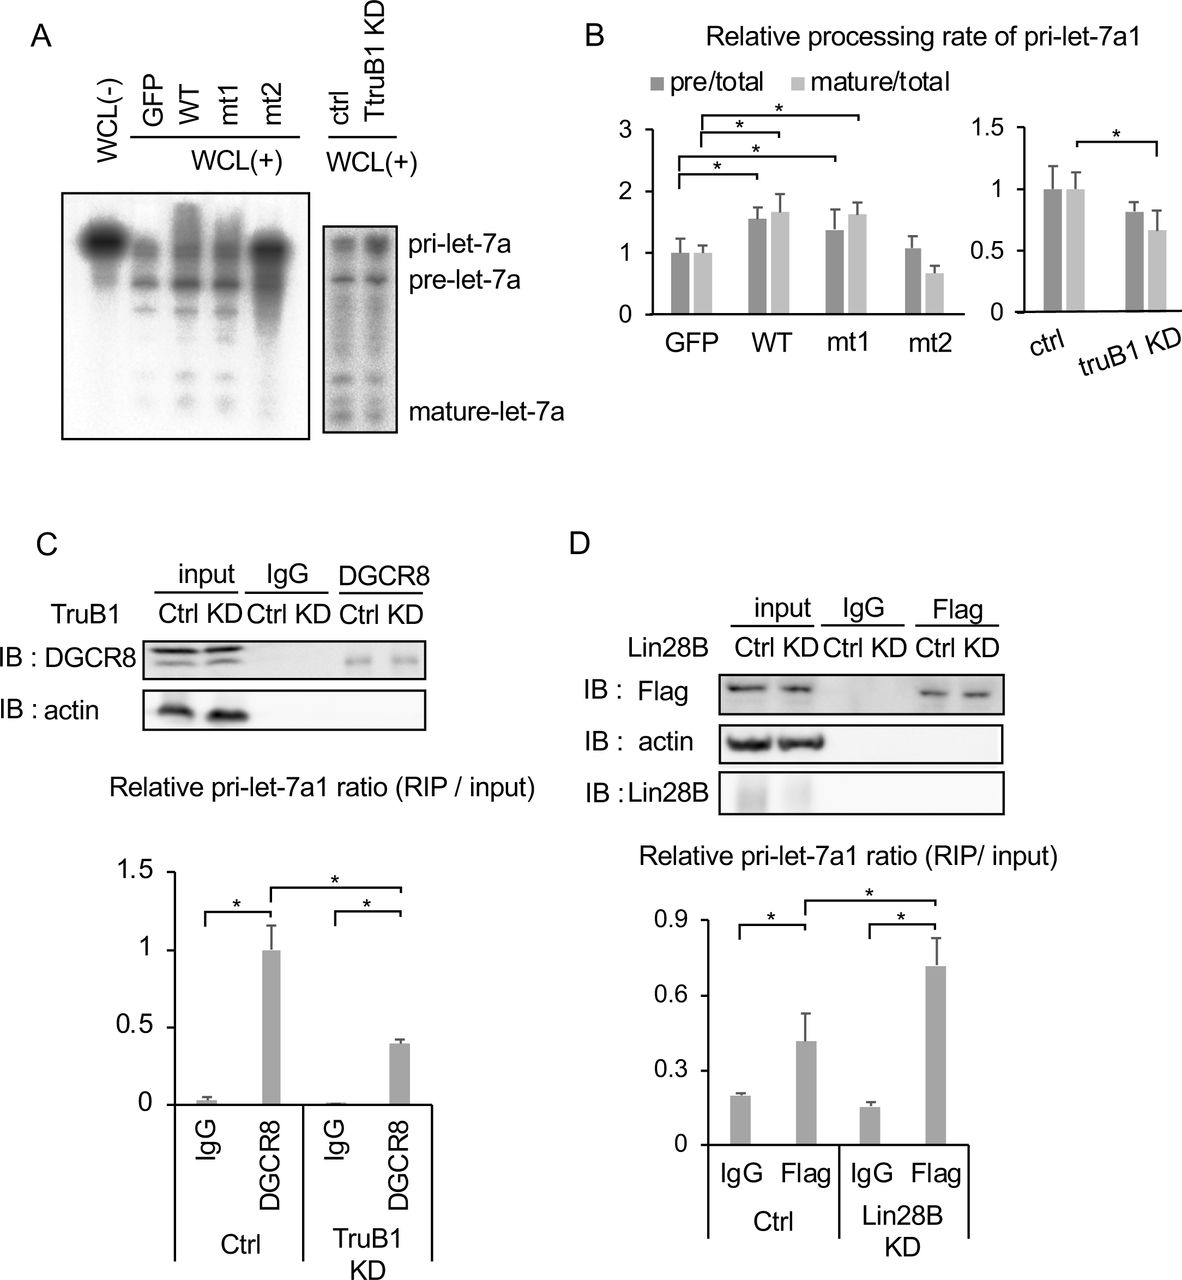 TruB1 promotes the microprocessing of primary let-7 and enhances binding of the microprocesser to primary let-7 (A). In vitro processing assay for RI-labelled pri-let-7a1. Autoradiographs of gels showing pri-let-7a1 treated with whole cell lysate (WCL) from HEK-293FT cells transfected with GFP, TruB1, mt1, or mt2 (overexpression, left), and TruB1 KD or ctrl (siRNA, right). (A). RI intensities of (B) were quantified and normalized to ctrl. Relative processing rate of pri-let-7a1 into pre- and mature- are shown. (C). RIP assay of pri-let-7a1 and DGCR-8 from HEK-293FT cells. Western blotting for input or immunoprecipitate (IP) using anti-DGCR-8 antibody and anti-actin antibody are shown on top. RNA was extracted from IP material and analyzed by qRT-PCR (bottom). (D). RIP assay of pri-let-7a1 and TruB1 from HEK-293FT cells with Lin28B KD or ctrl (siRNA). Western blotting for input or IP material using anti-Flag antibody, anti-Lin28B antibody, and anti-actin antibody are shown on top. RNA was extracted from IP material and analyzed by qRT-PCR (bottom). All experiments were performed in triplicate. Error bars show SD; n=3.